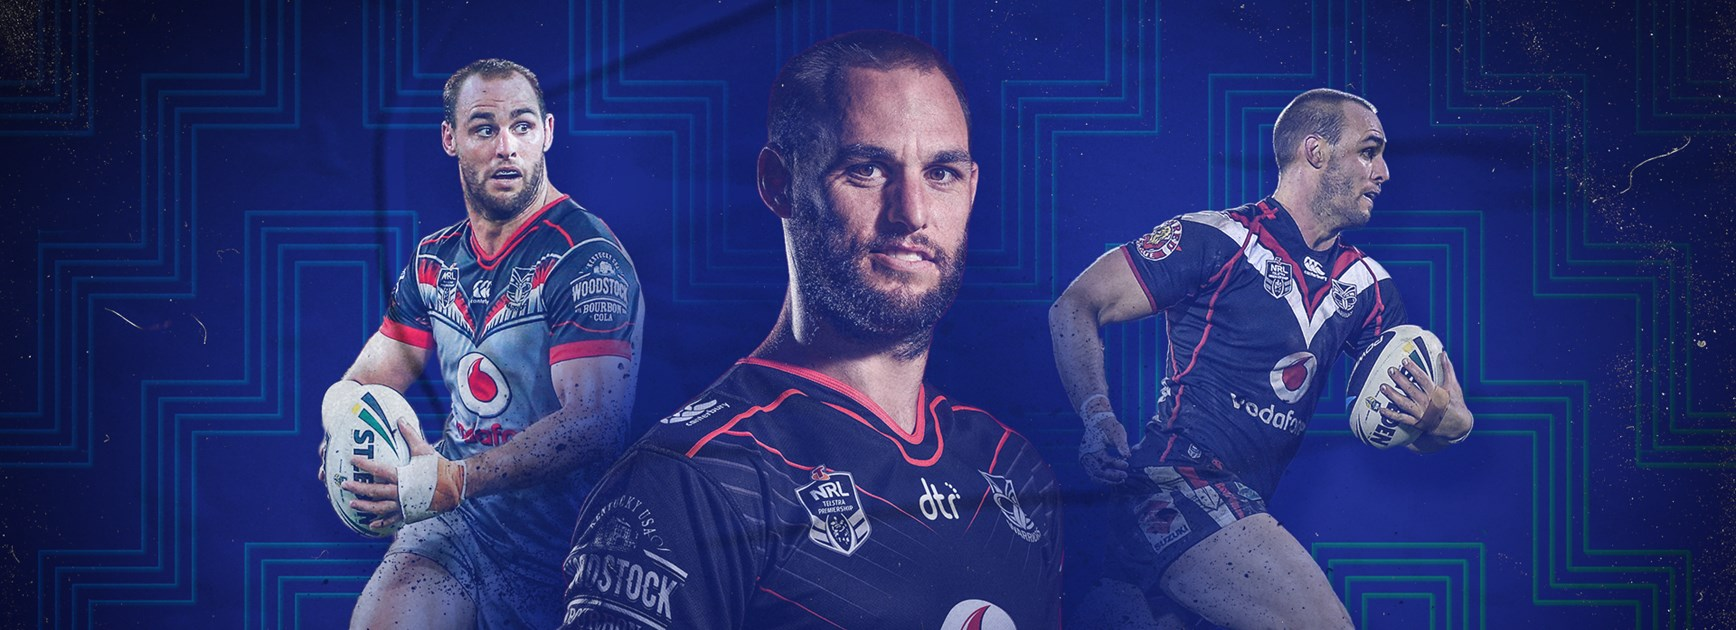 Mannering returning home in new role